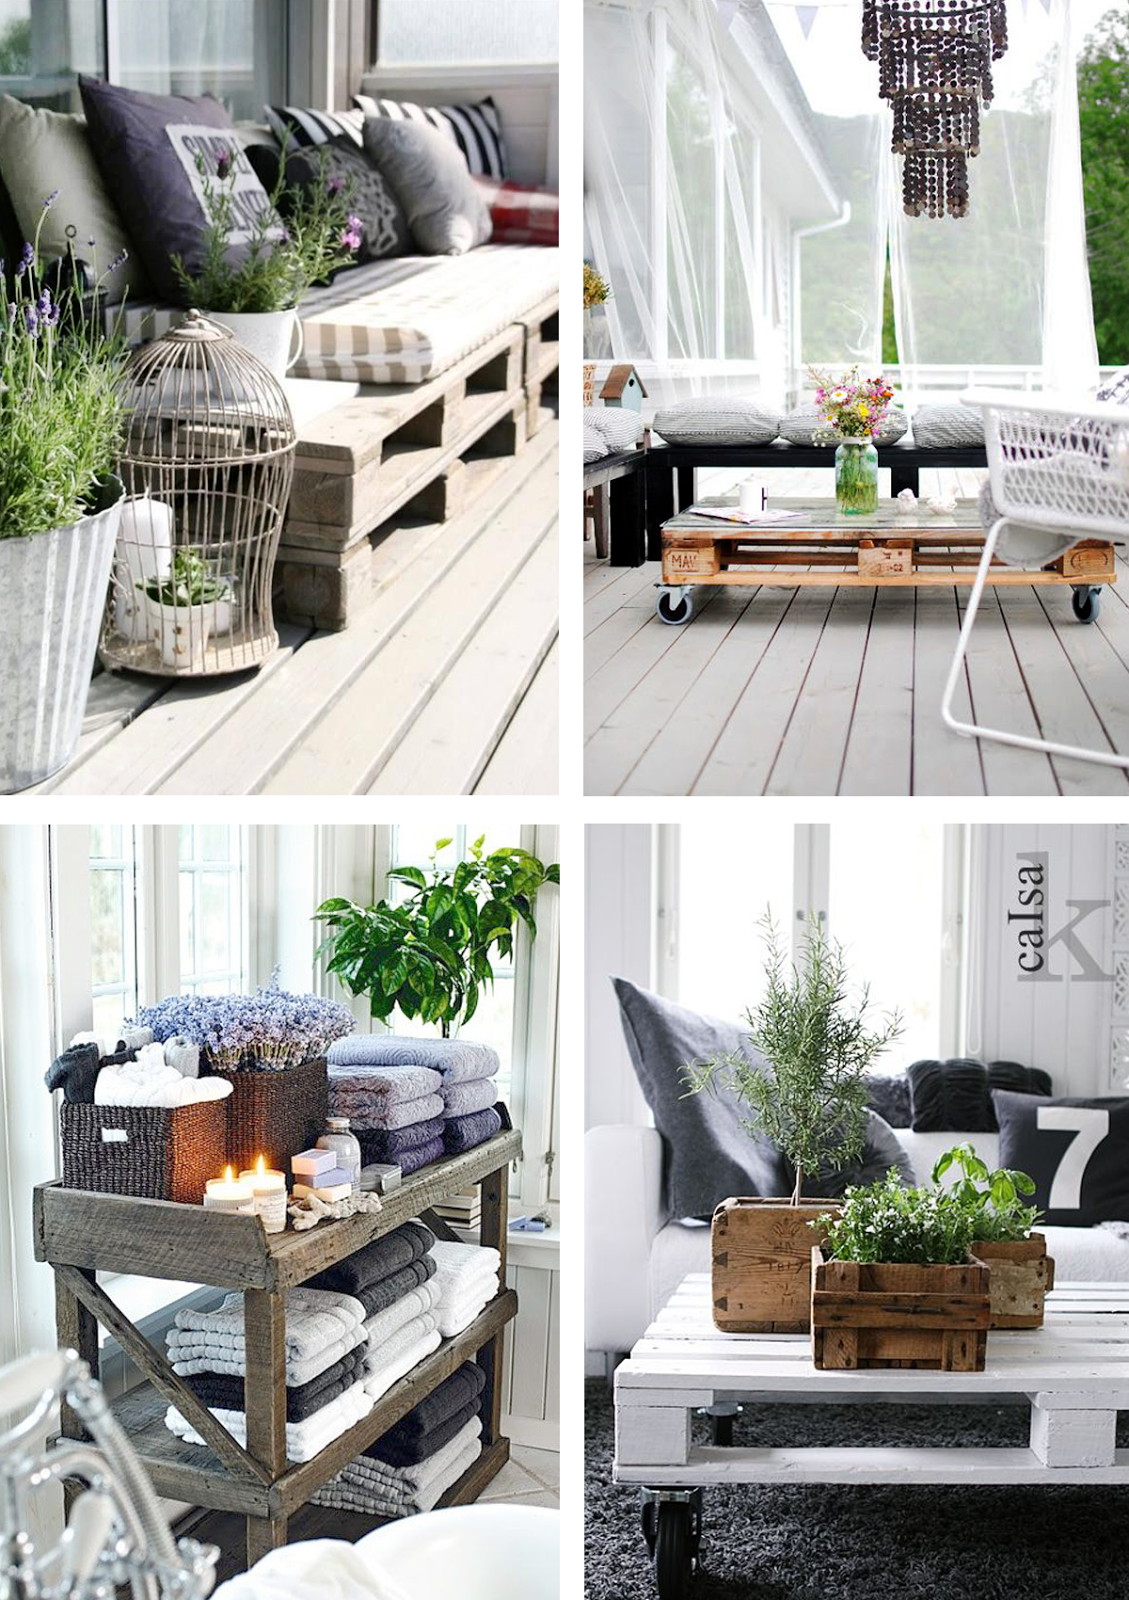 Chicdeco Blog | 10 smart pieces of furniture made with pallets